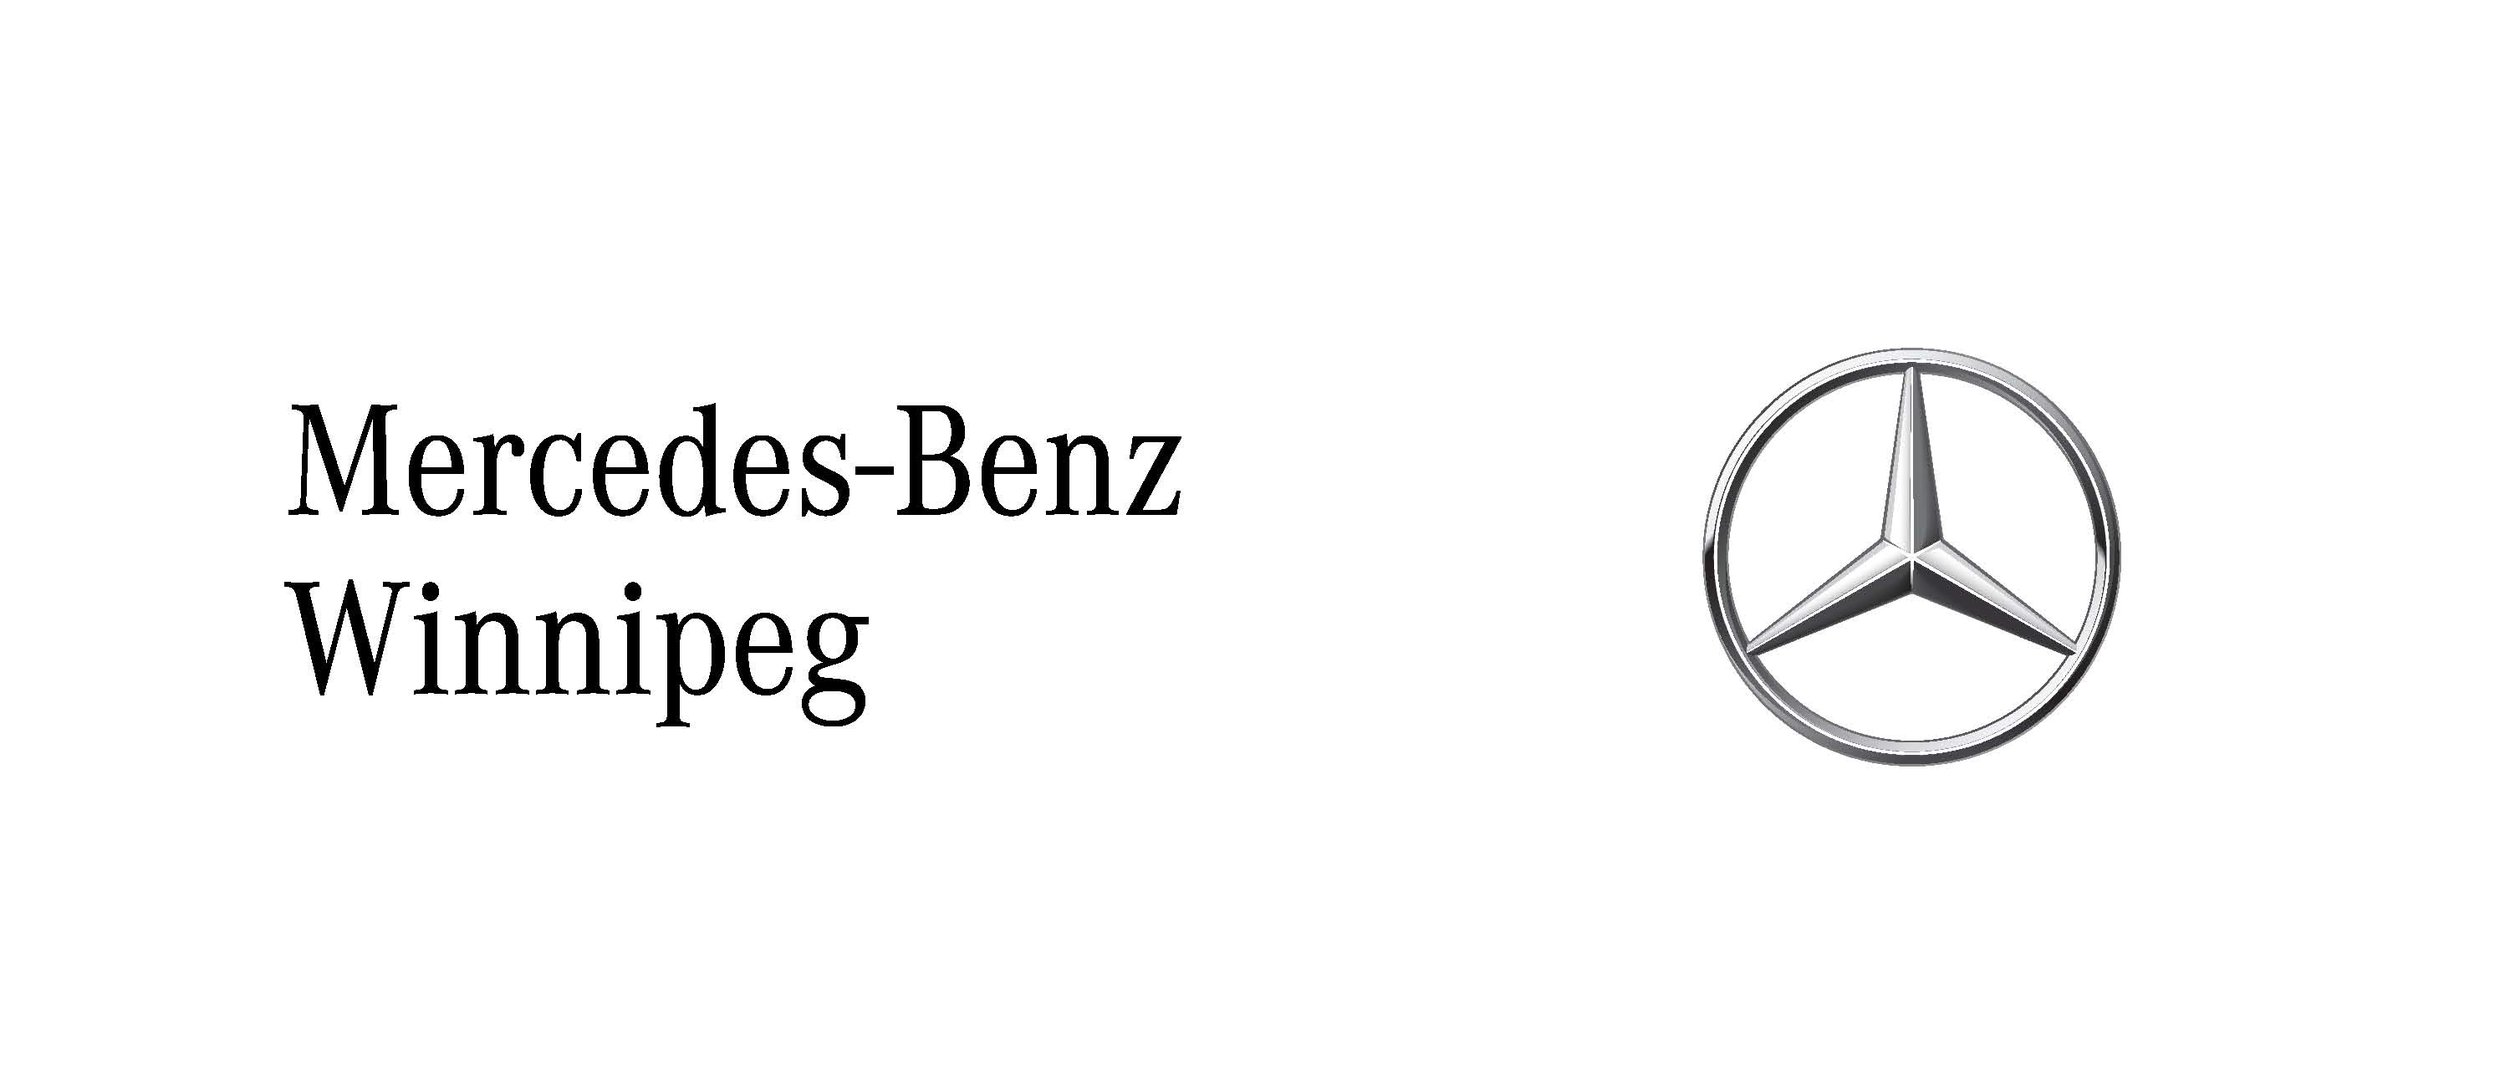 Mercedes-Benz Winnipeg LOGO white.jpg